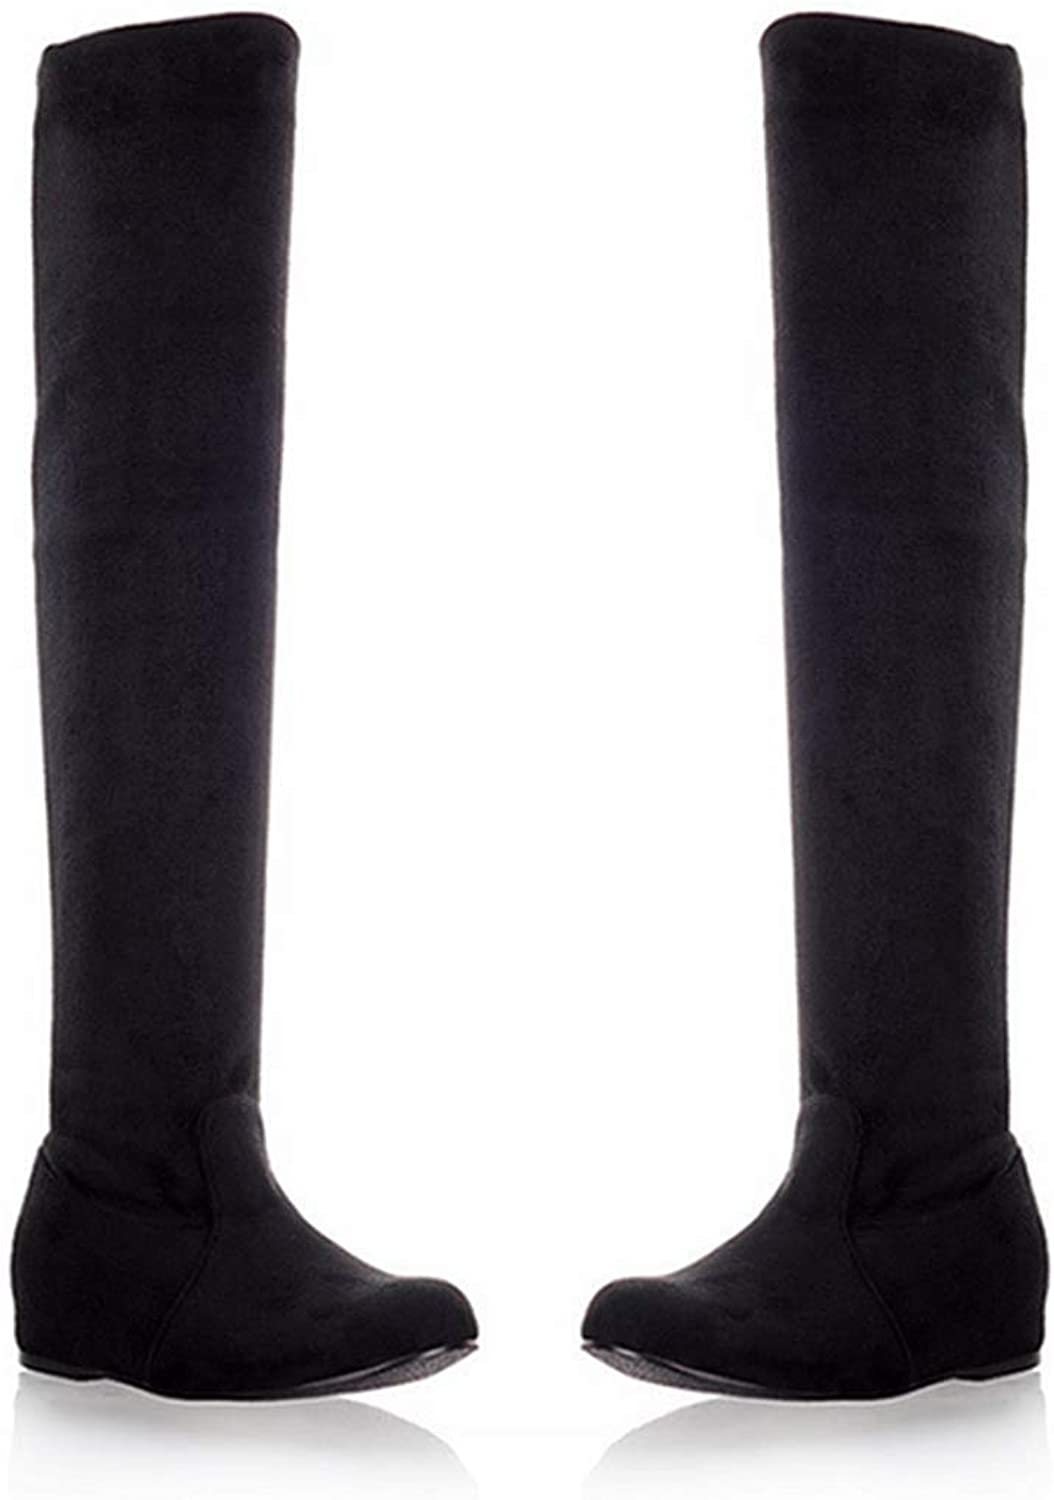 DOSOMI Women's Flock Thigh High Stretch Boots Round Toe Square Over Heel Knee High Boots